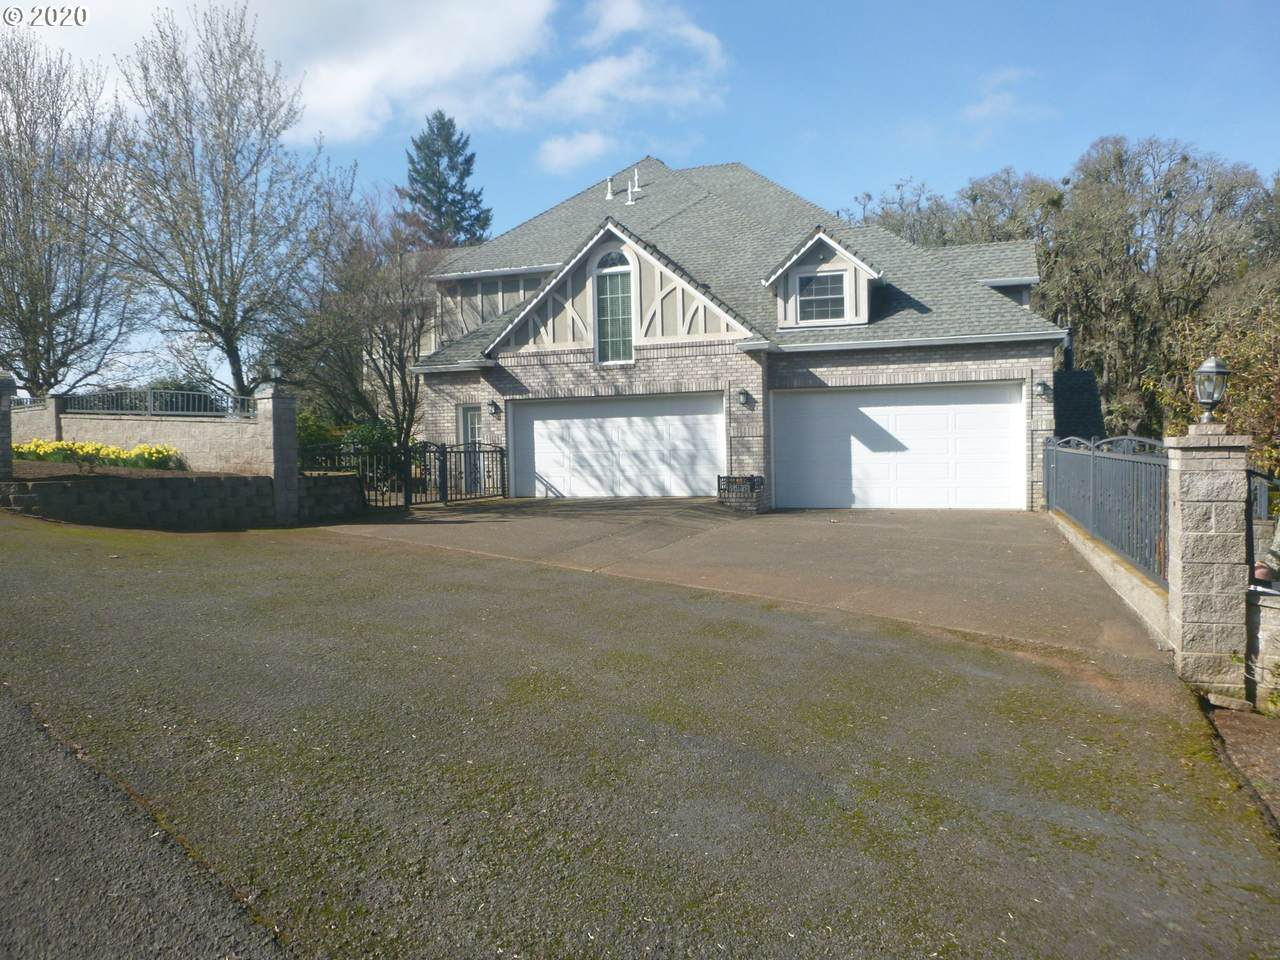 36337 Blueberry Dr - Photo 1